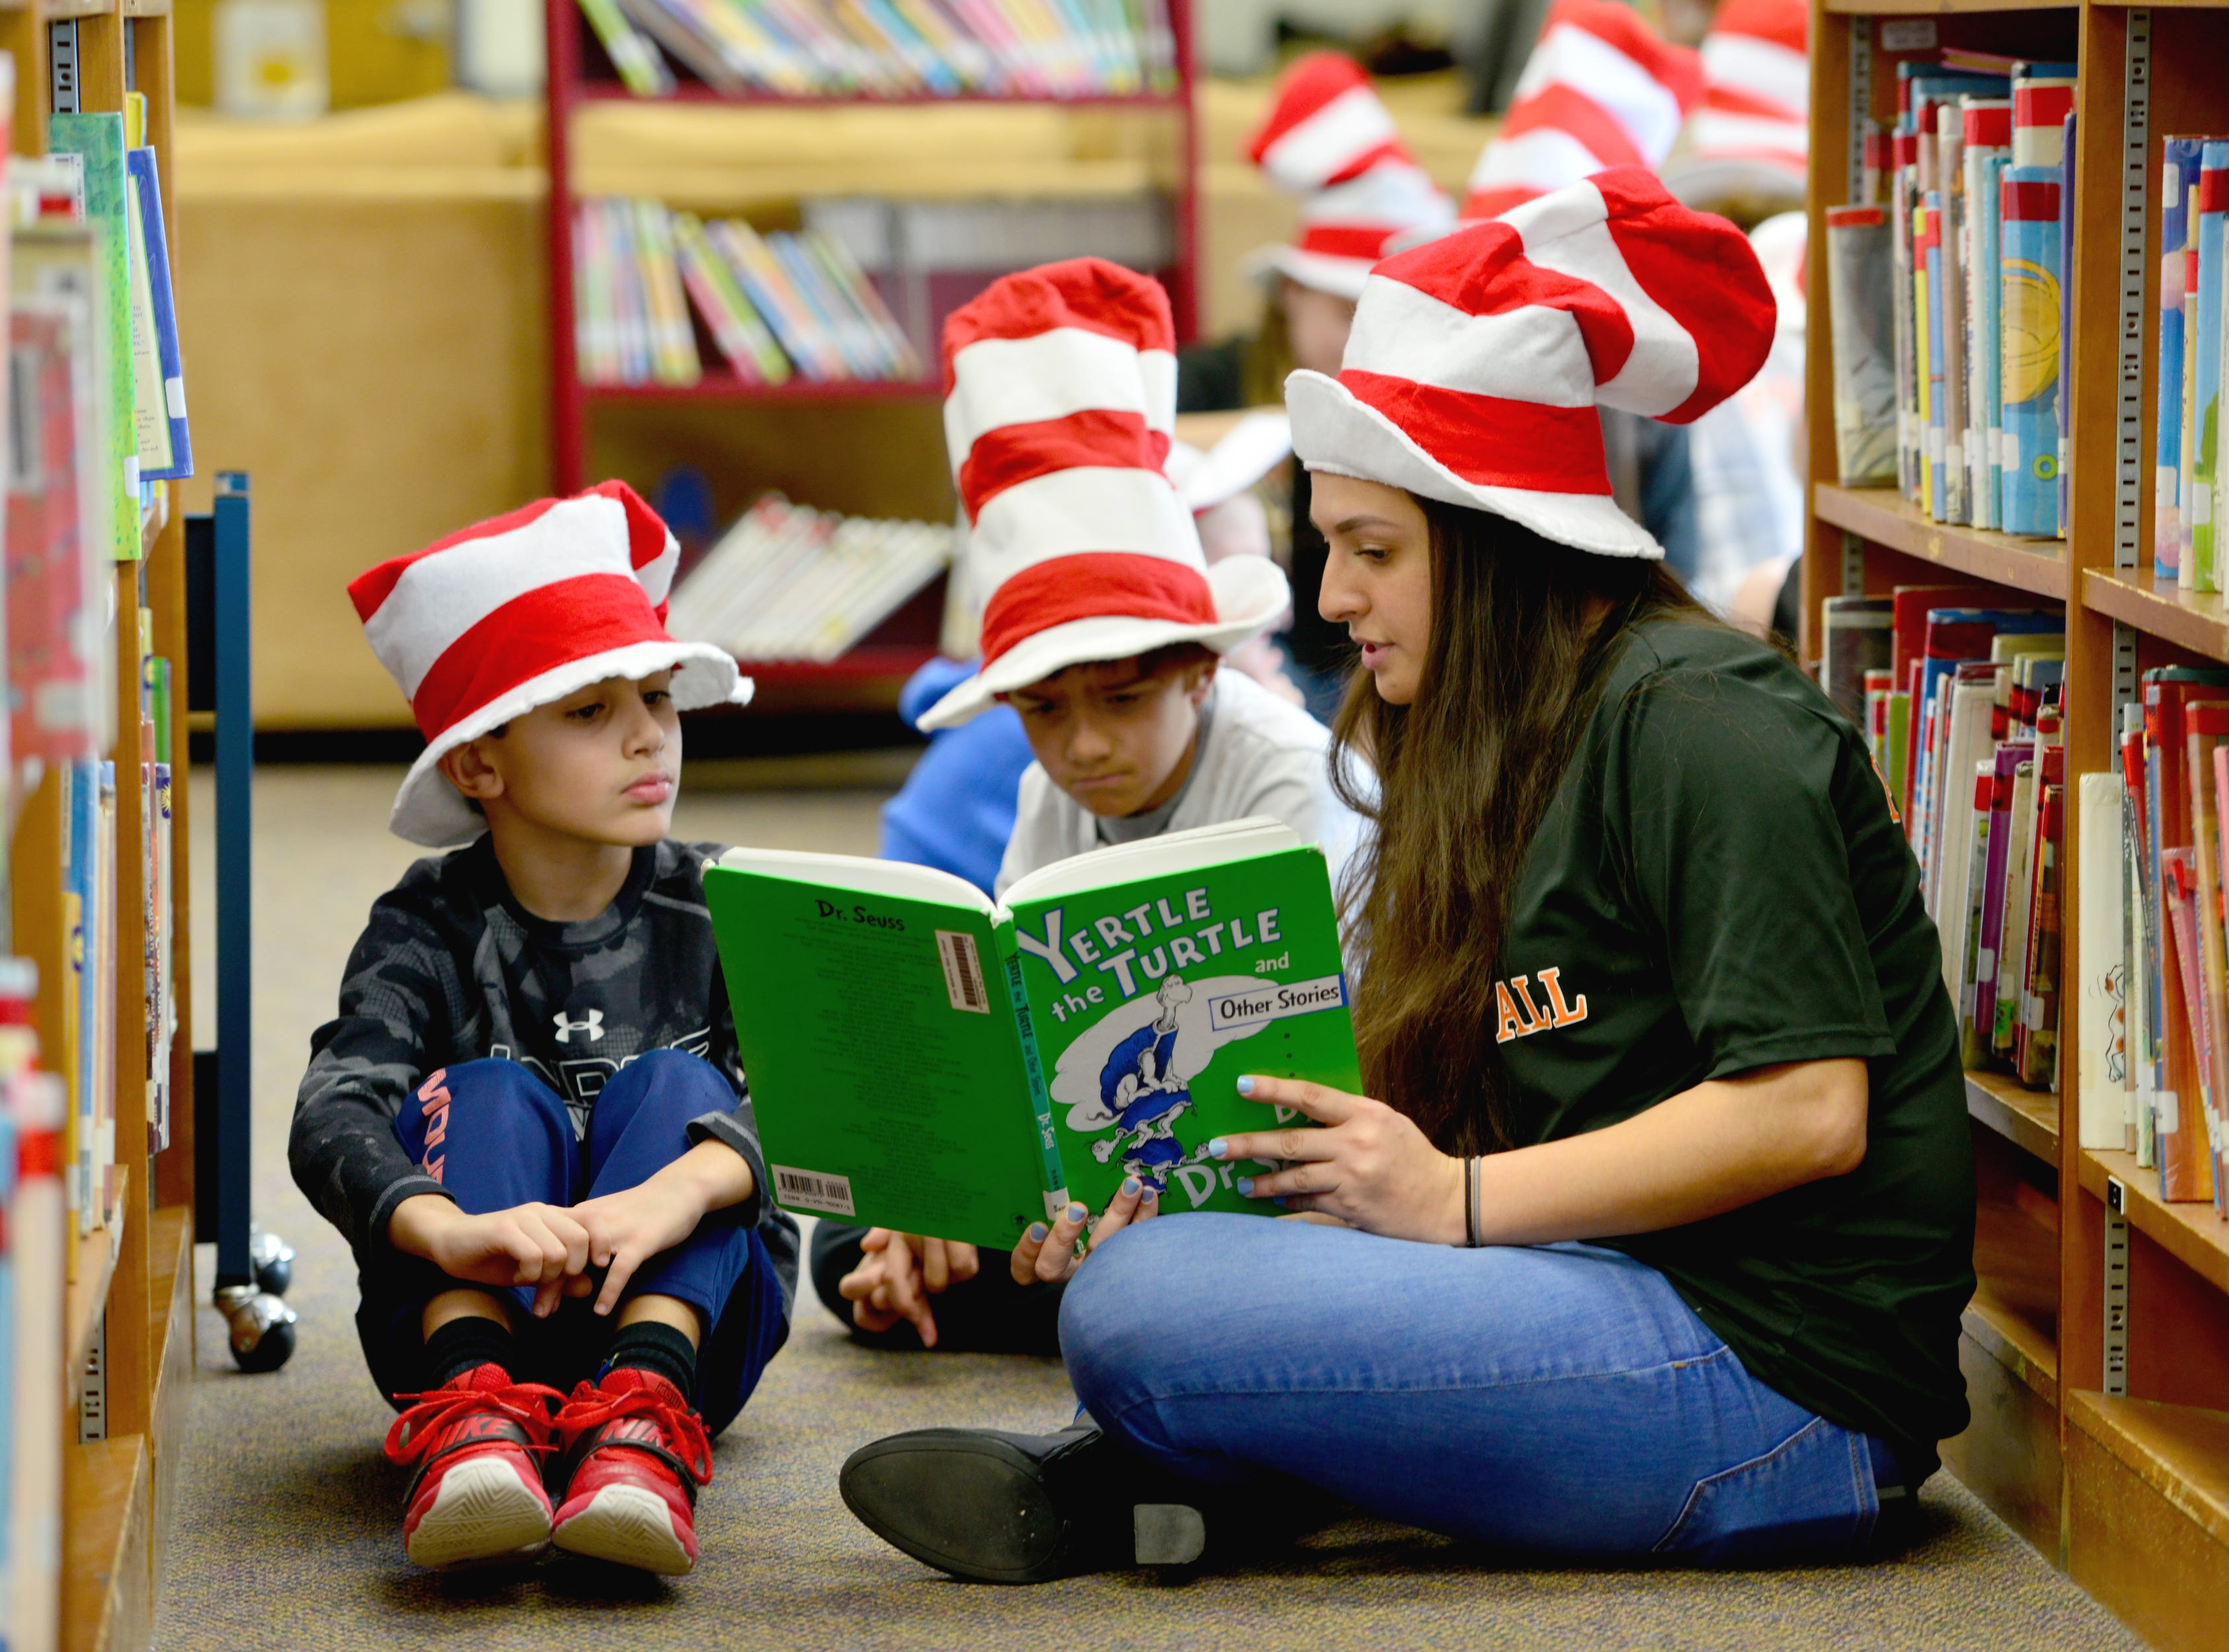 From right, Julianna Ginefra read to Dilan Sharma and Gregory Alashaian. Volleyball players from William Paterson University read to the second grade class at High Mountain Road School in Franklin Lakes on Friday March 1, 2019.